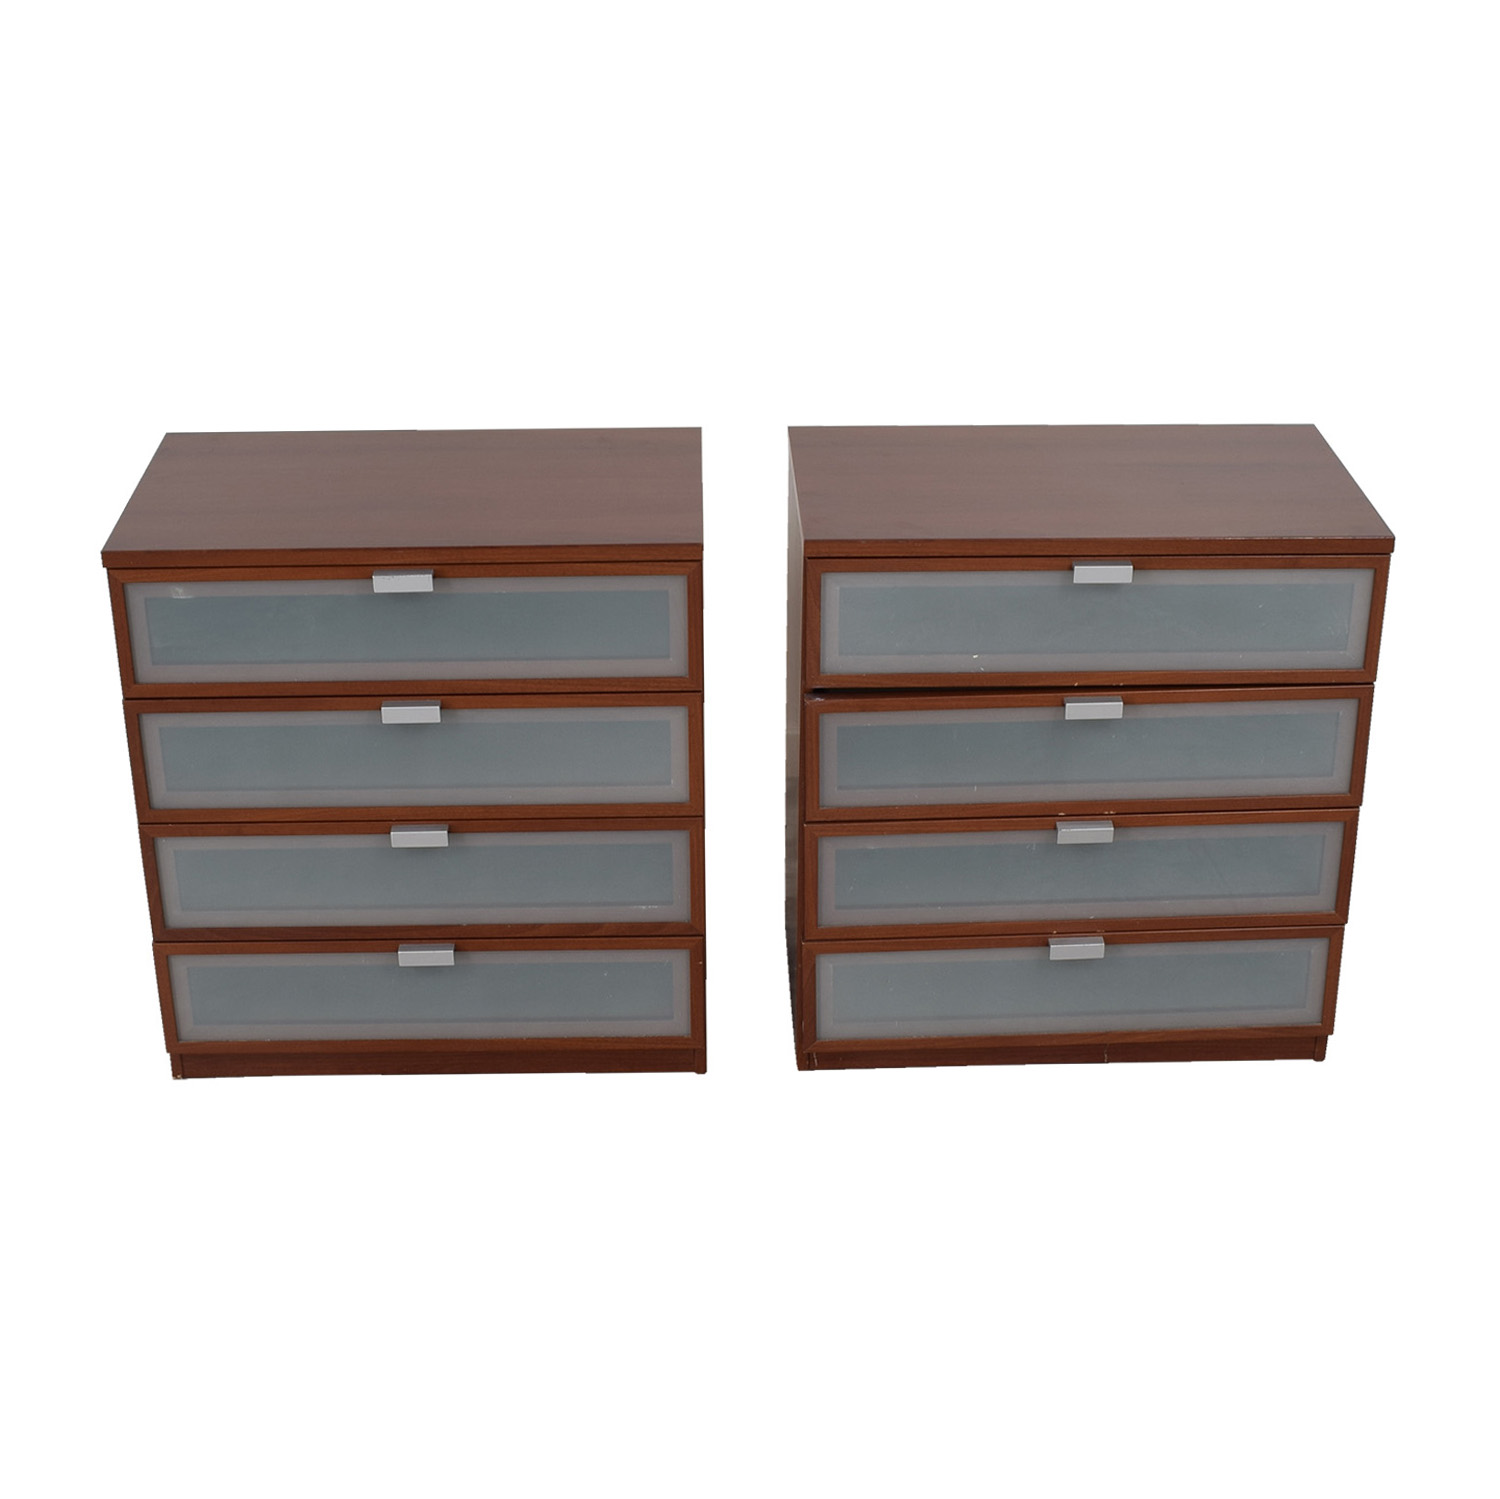 Crate & Barrel Crate & Barrel Wood and Glass Dressers second hand